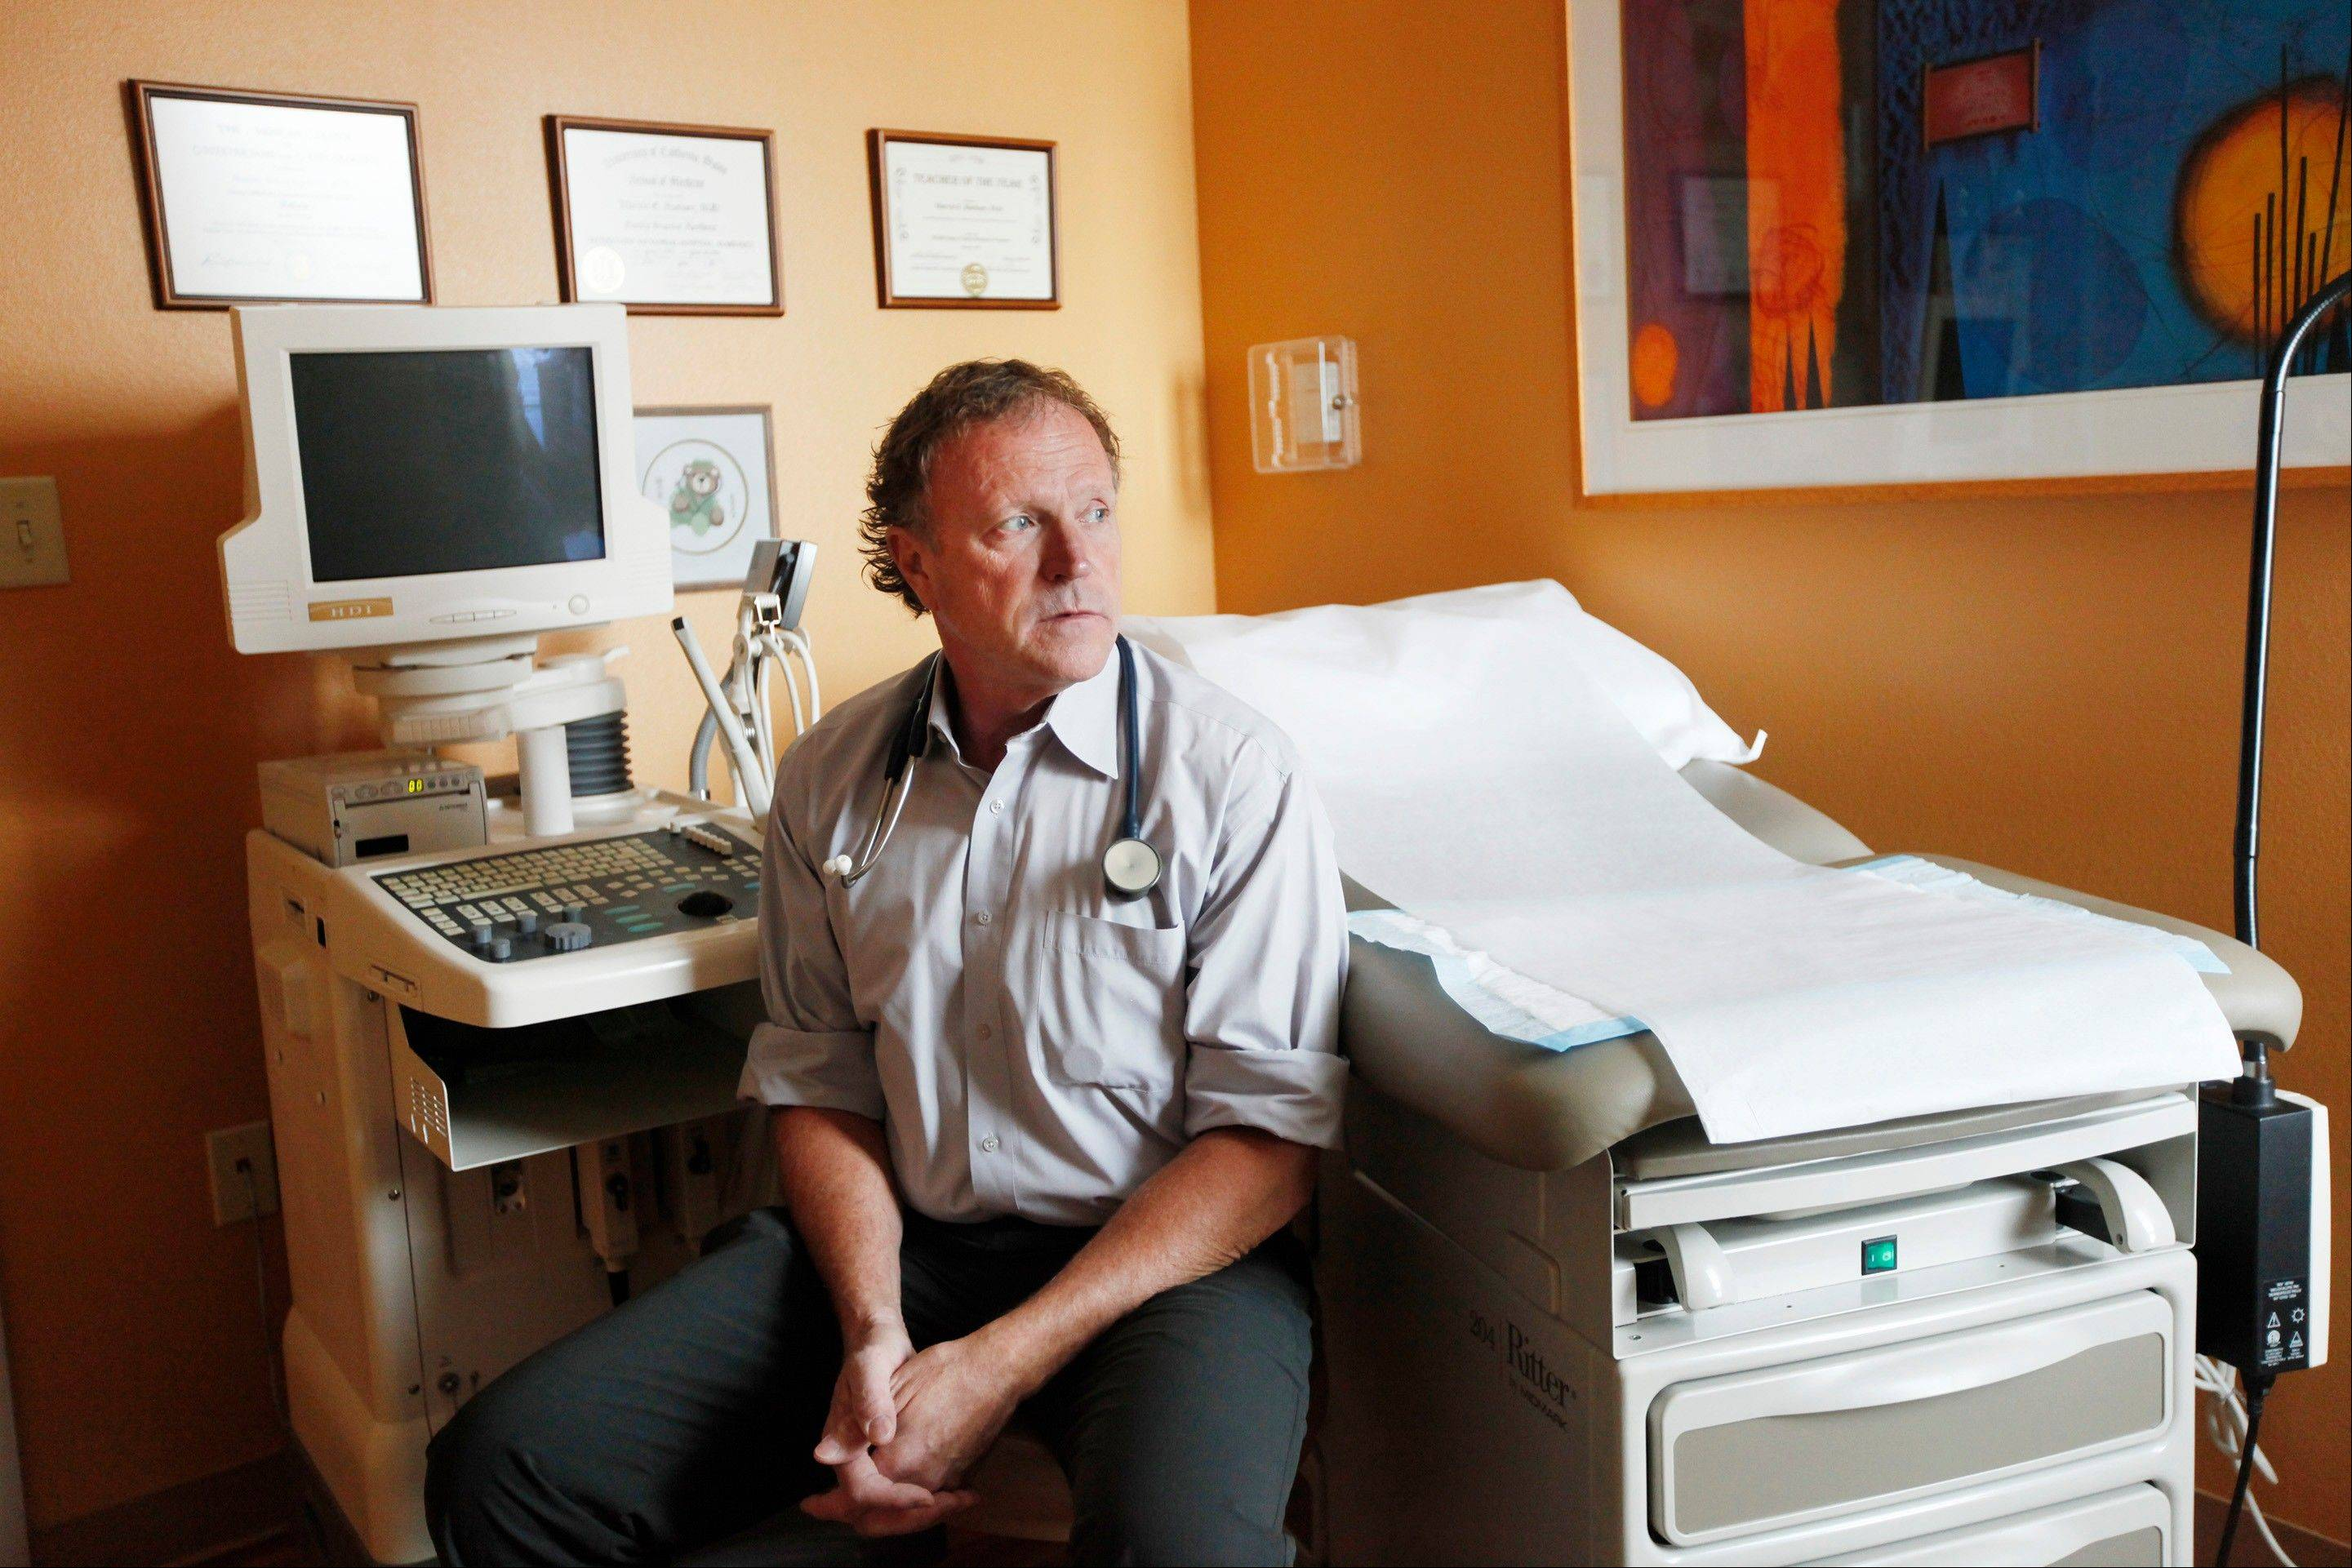 While the majority of Dr. Marvin E. Buehner's work in Rapid City, S.D., is delivering babies, he can perform pregnancy terminations only when there is a risk to the mother's life.